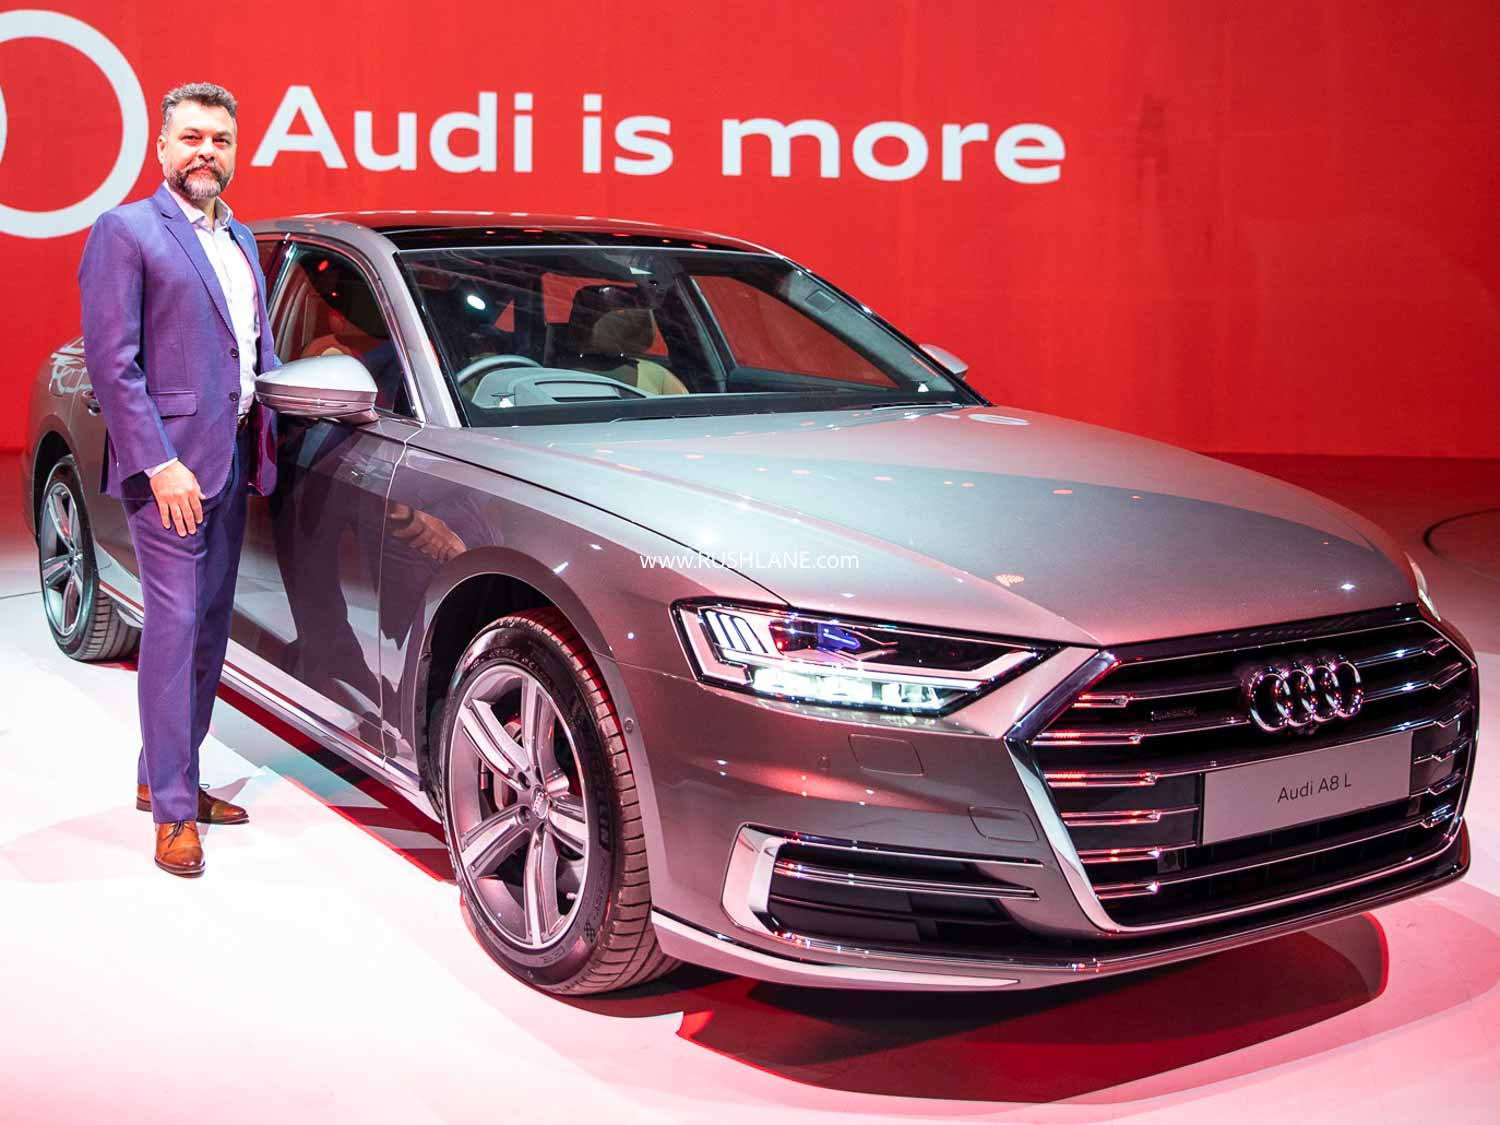 Audi India website lists only 3 cars – A6, Q8 and A8 L